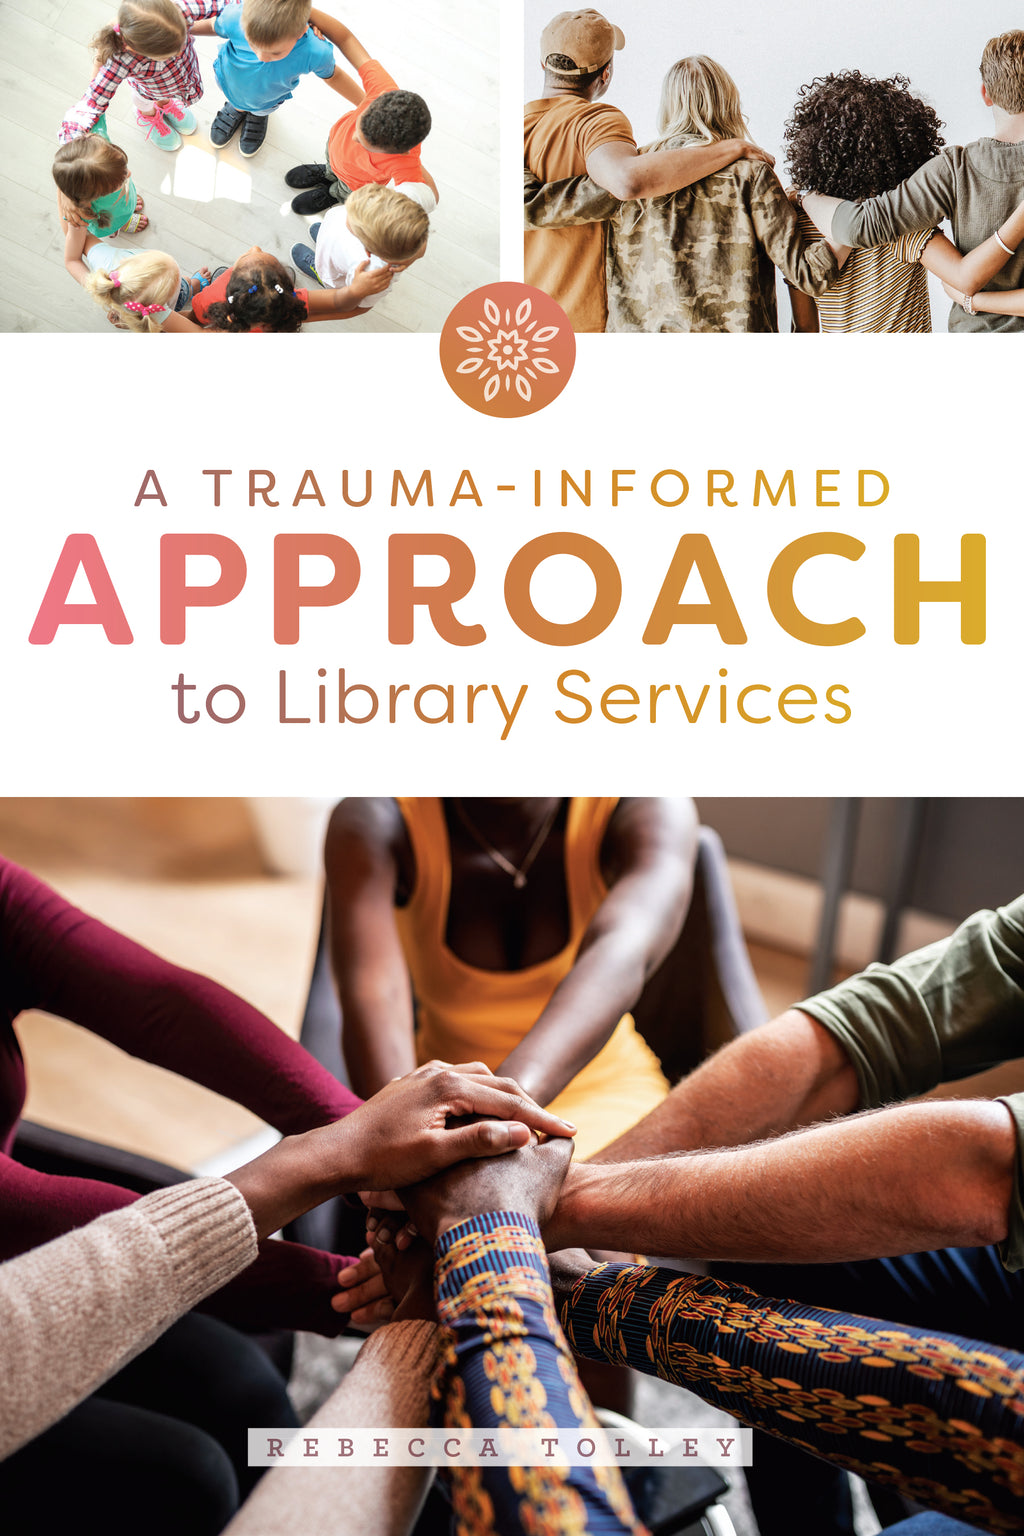 A Trauma-Informed Approach to Library Services